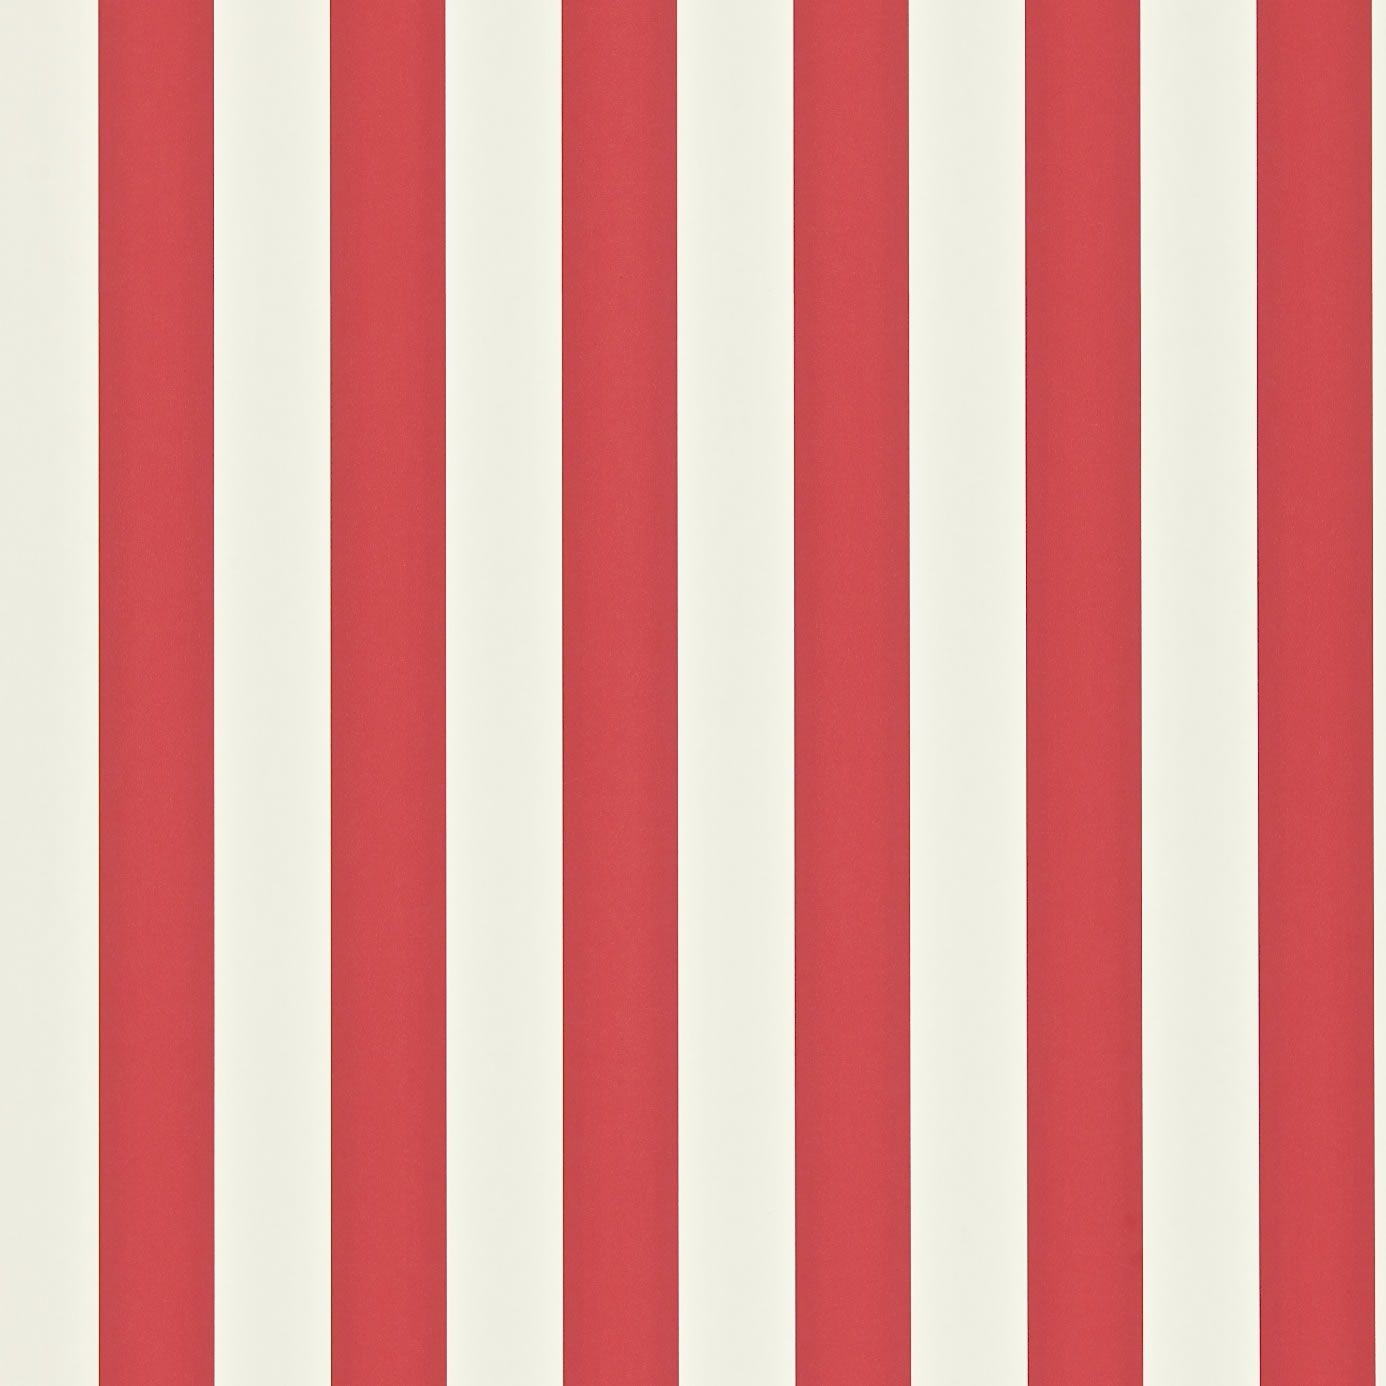 Red And White Stripes Wallpaper